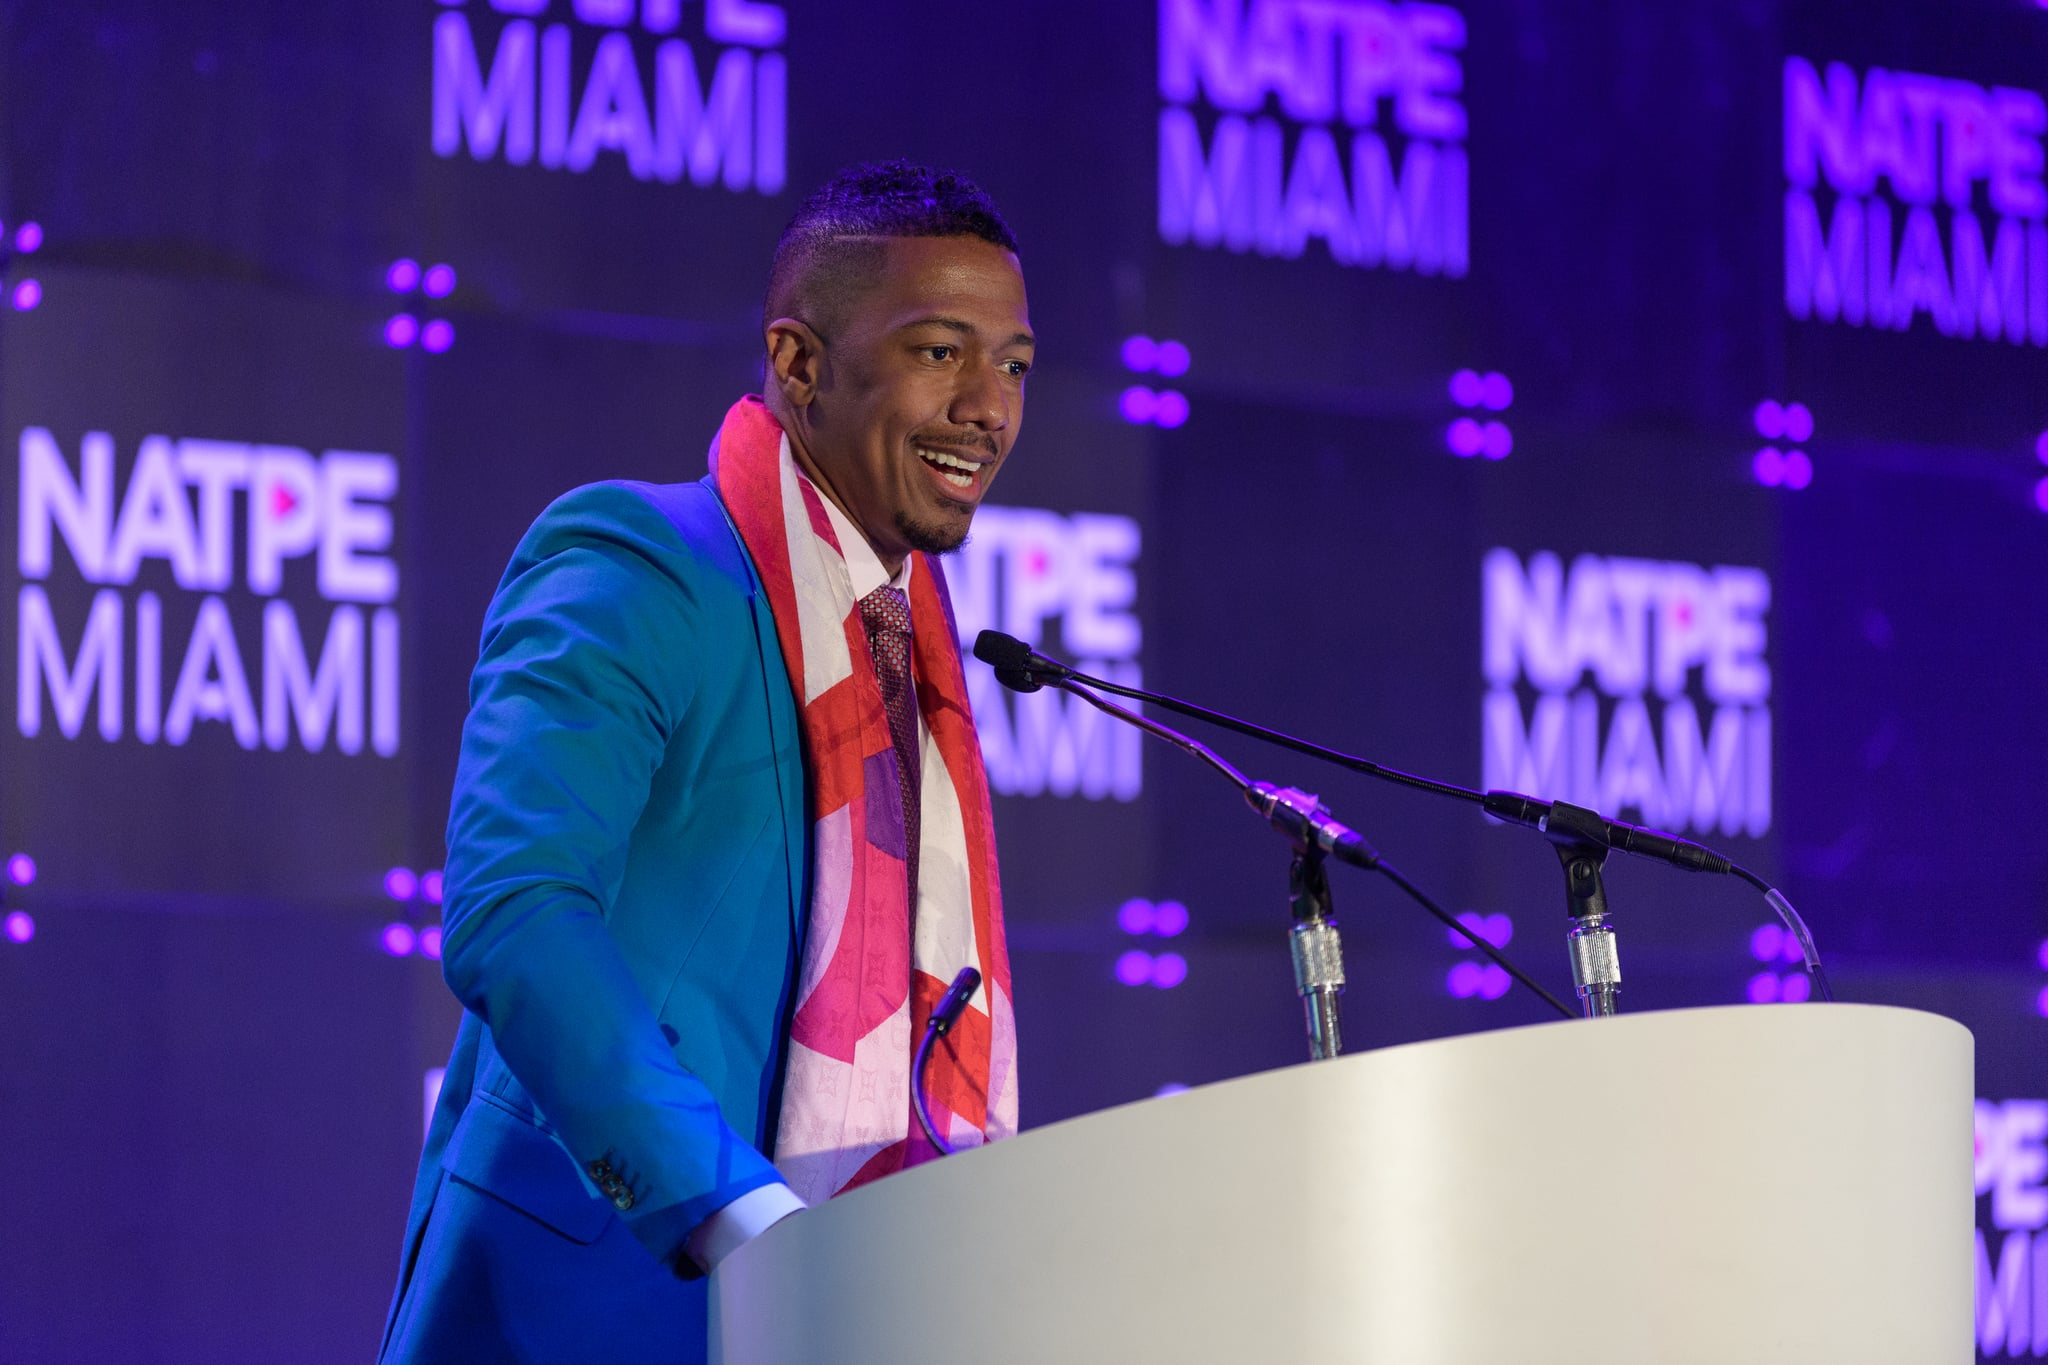 MIAMI BEACH, FL - JANUARY 22:  Nick Cannon speaks on stage during NATPE Miami 2020 - Iris Awards at Fontainebleau Hotel on January 22, 2020 in Miami Beach, Florida.  (Photo by Jason Koerner/Getty Images)